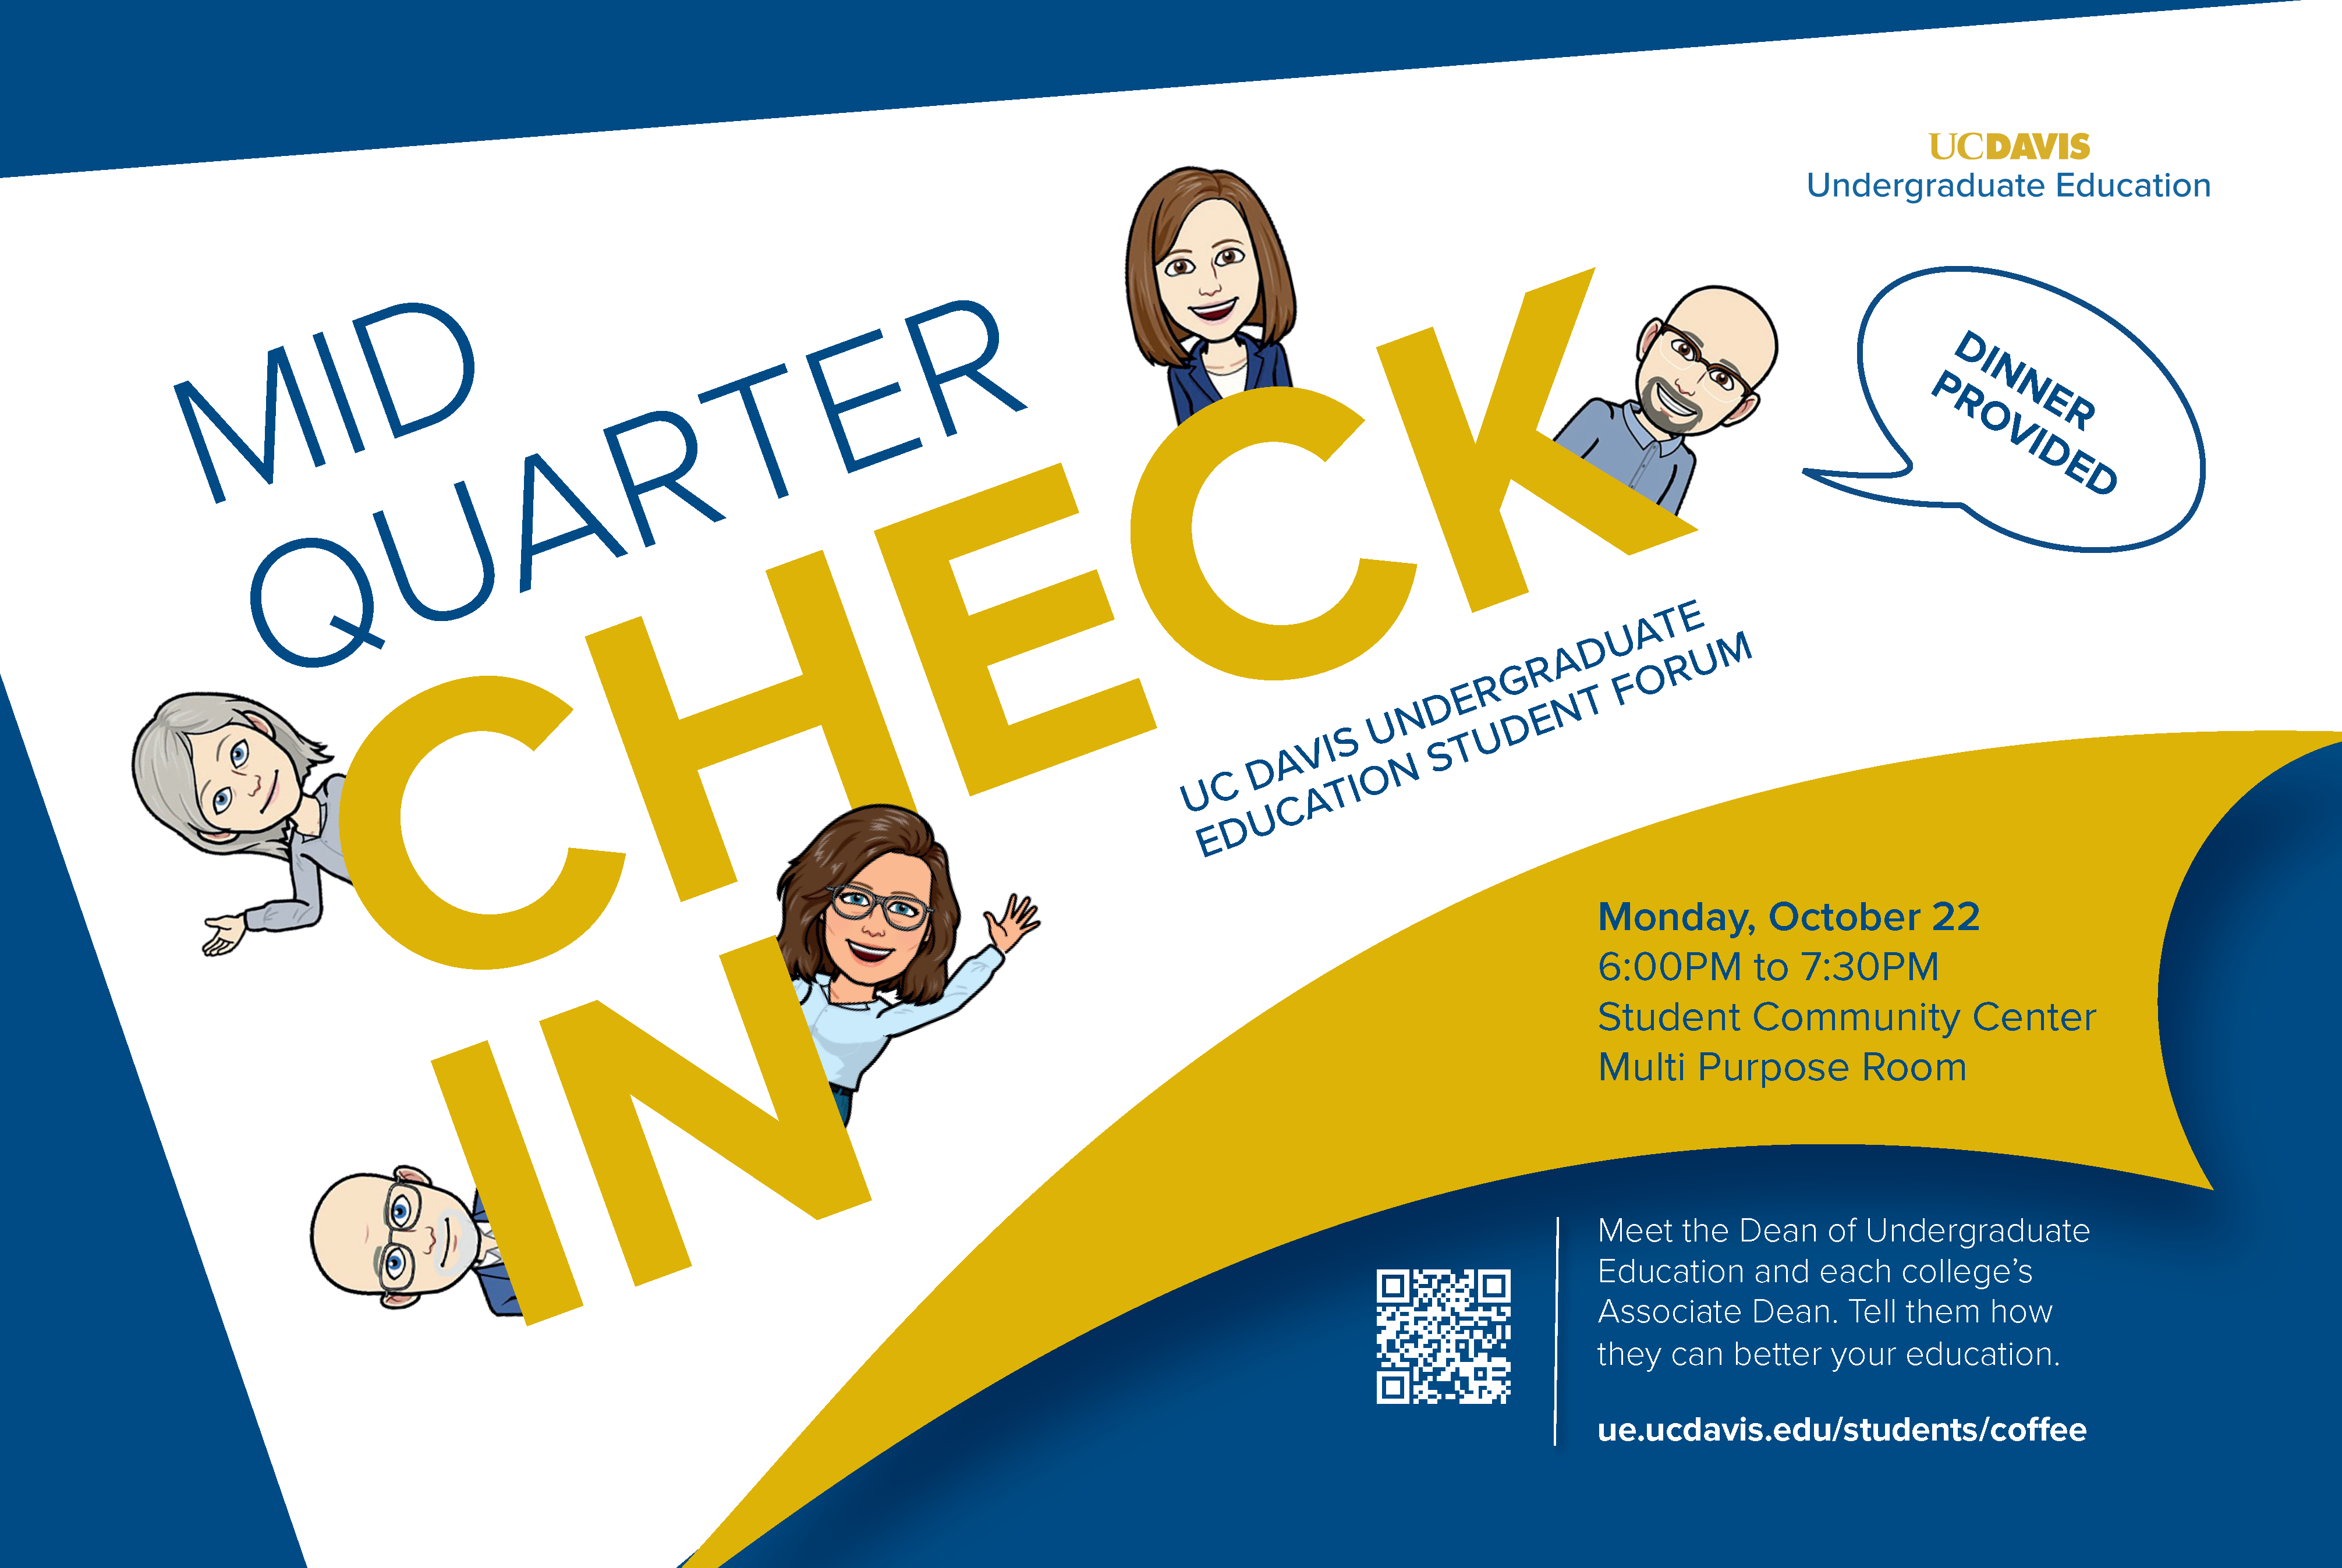 check-in flyer with bitmoji characters of associate deans